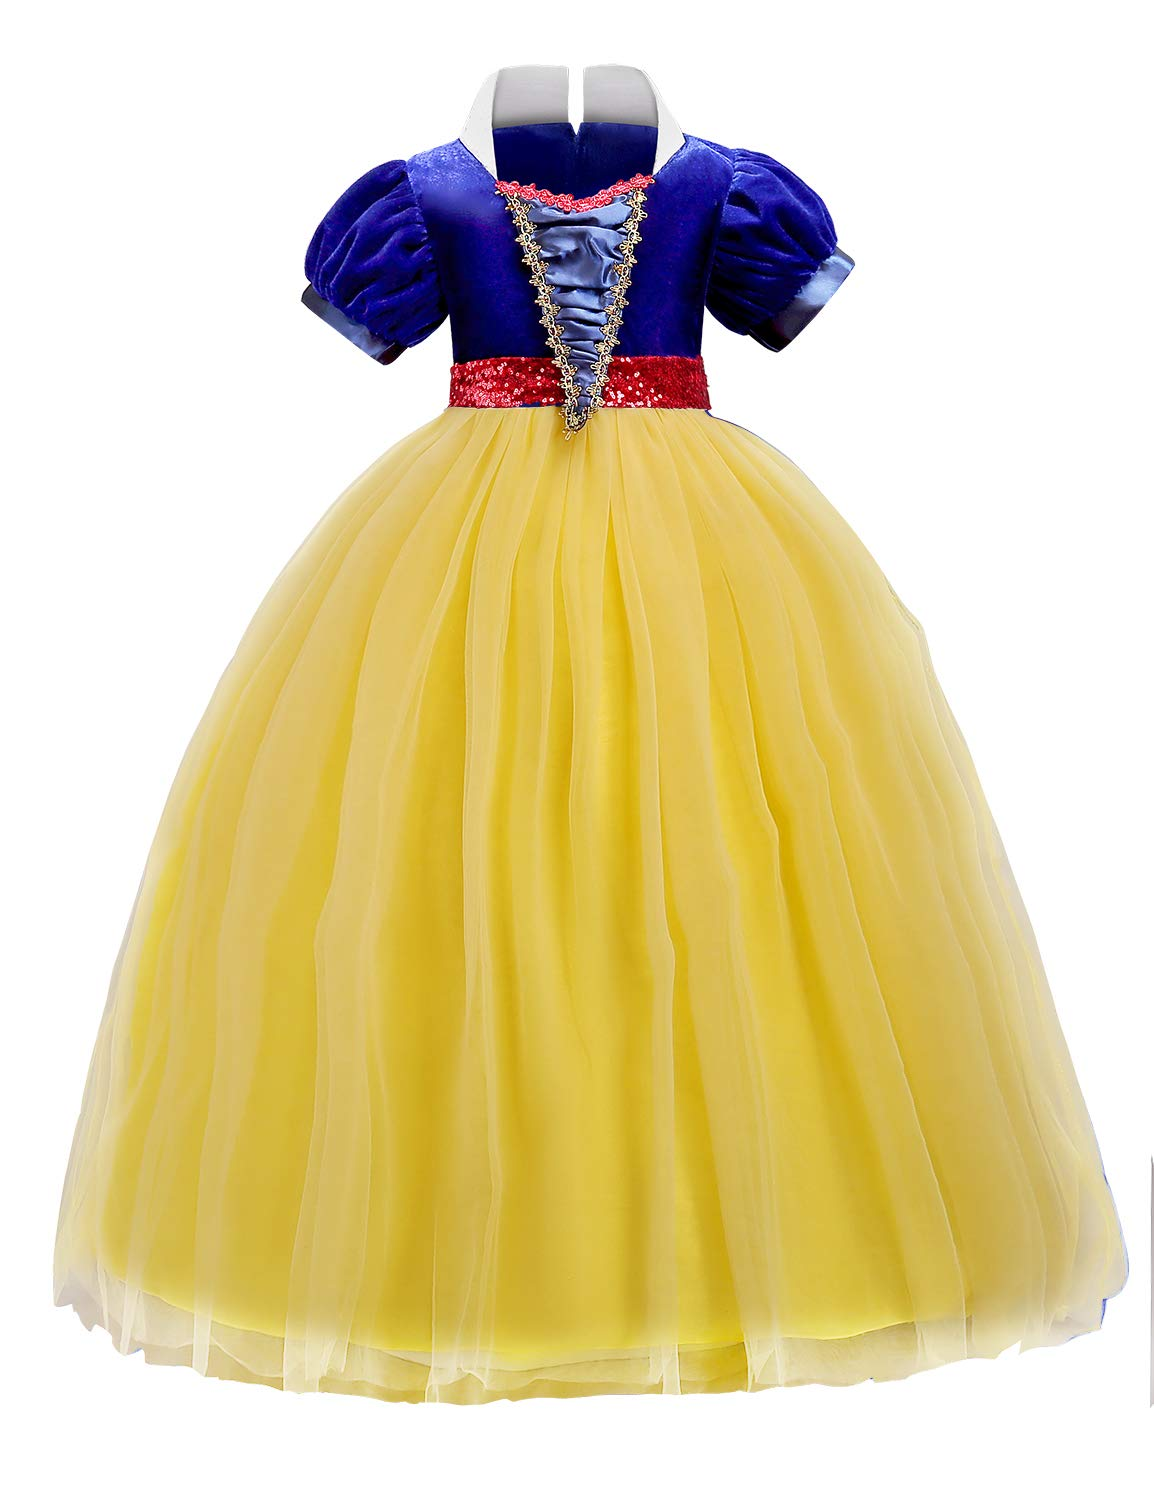 Quinee Costumes for Girls, Teen Girls Fancy Puffed Sleeve Ribbon Tie Satin Belt Beading Waist Dress Up Cotton Lining Contrast Color Ball Gown Dress for Disney Cruise Yellow 140(9-10Yr)